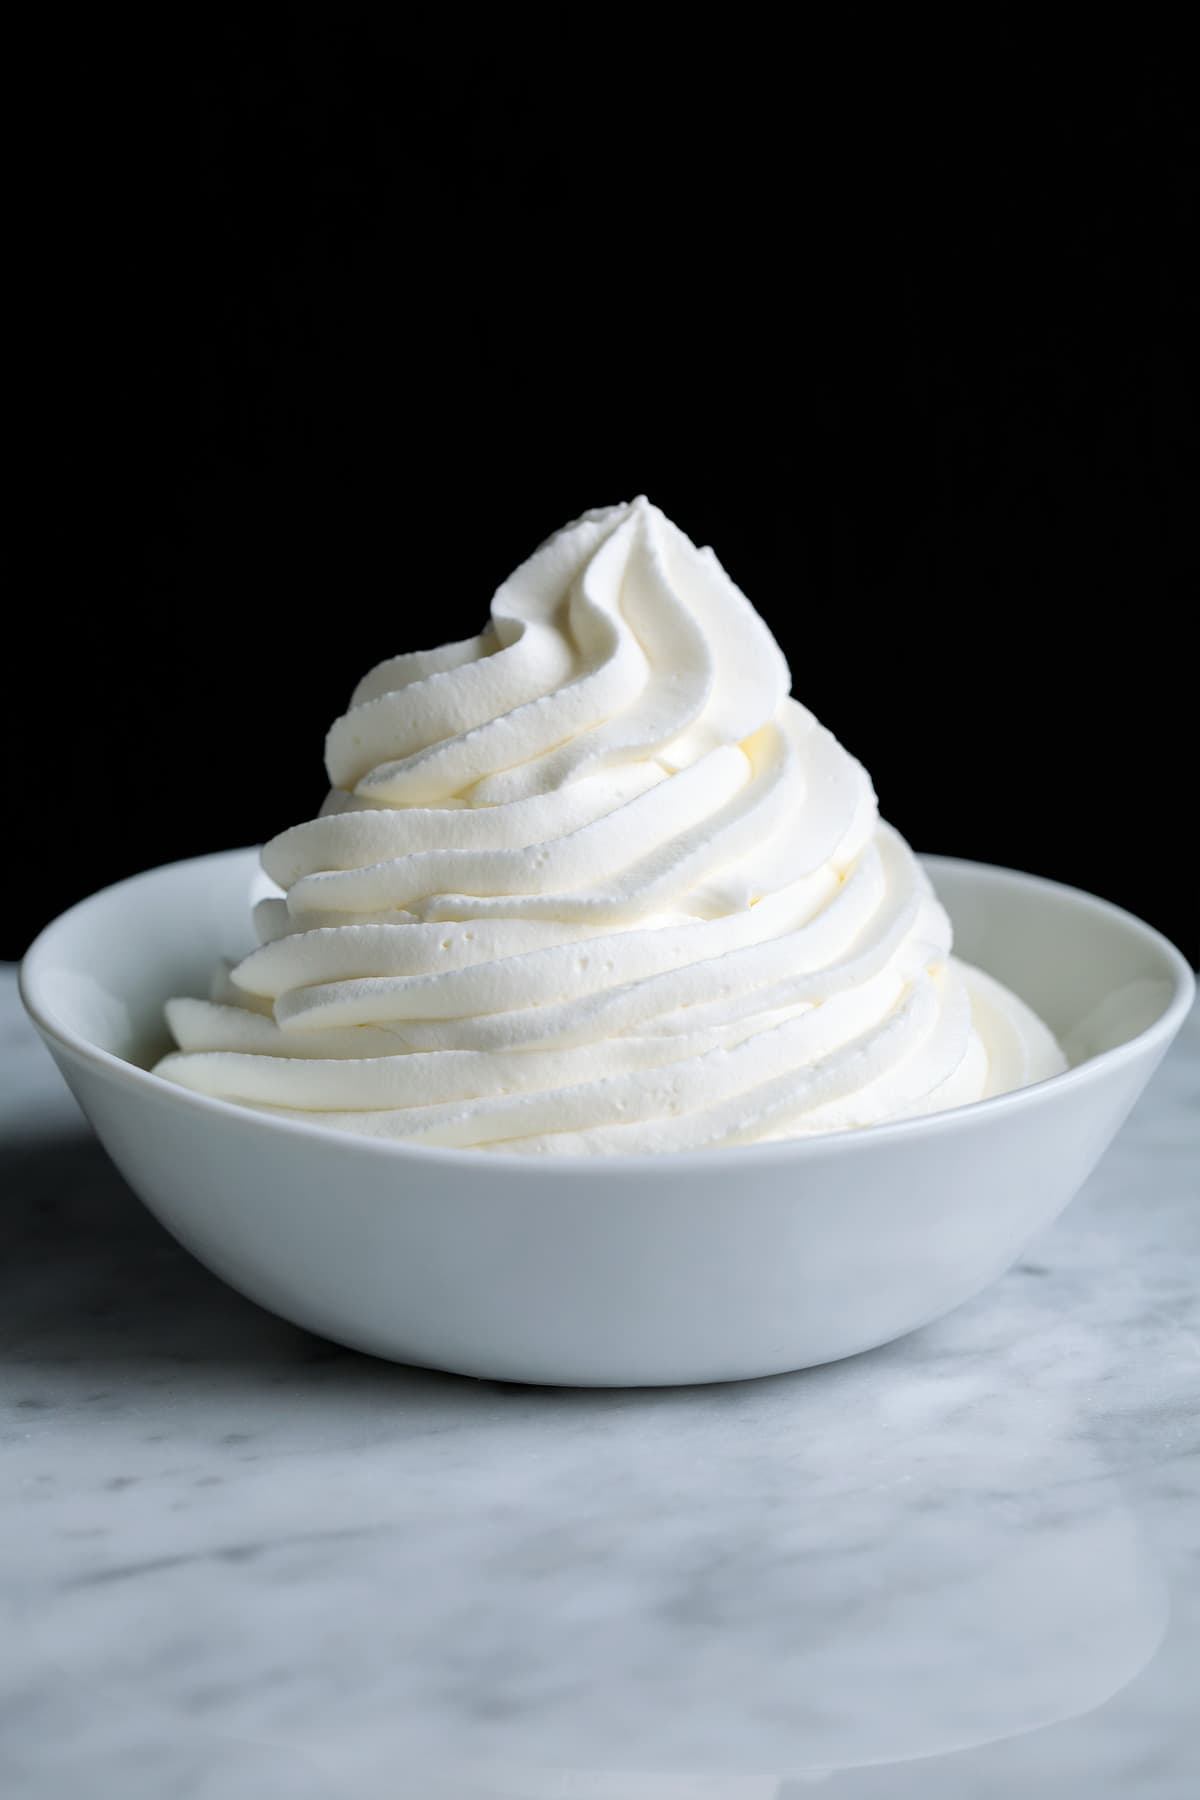 Piped mound of whipped cream in a white bowl set over a marble surface with a black background.